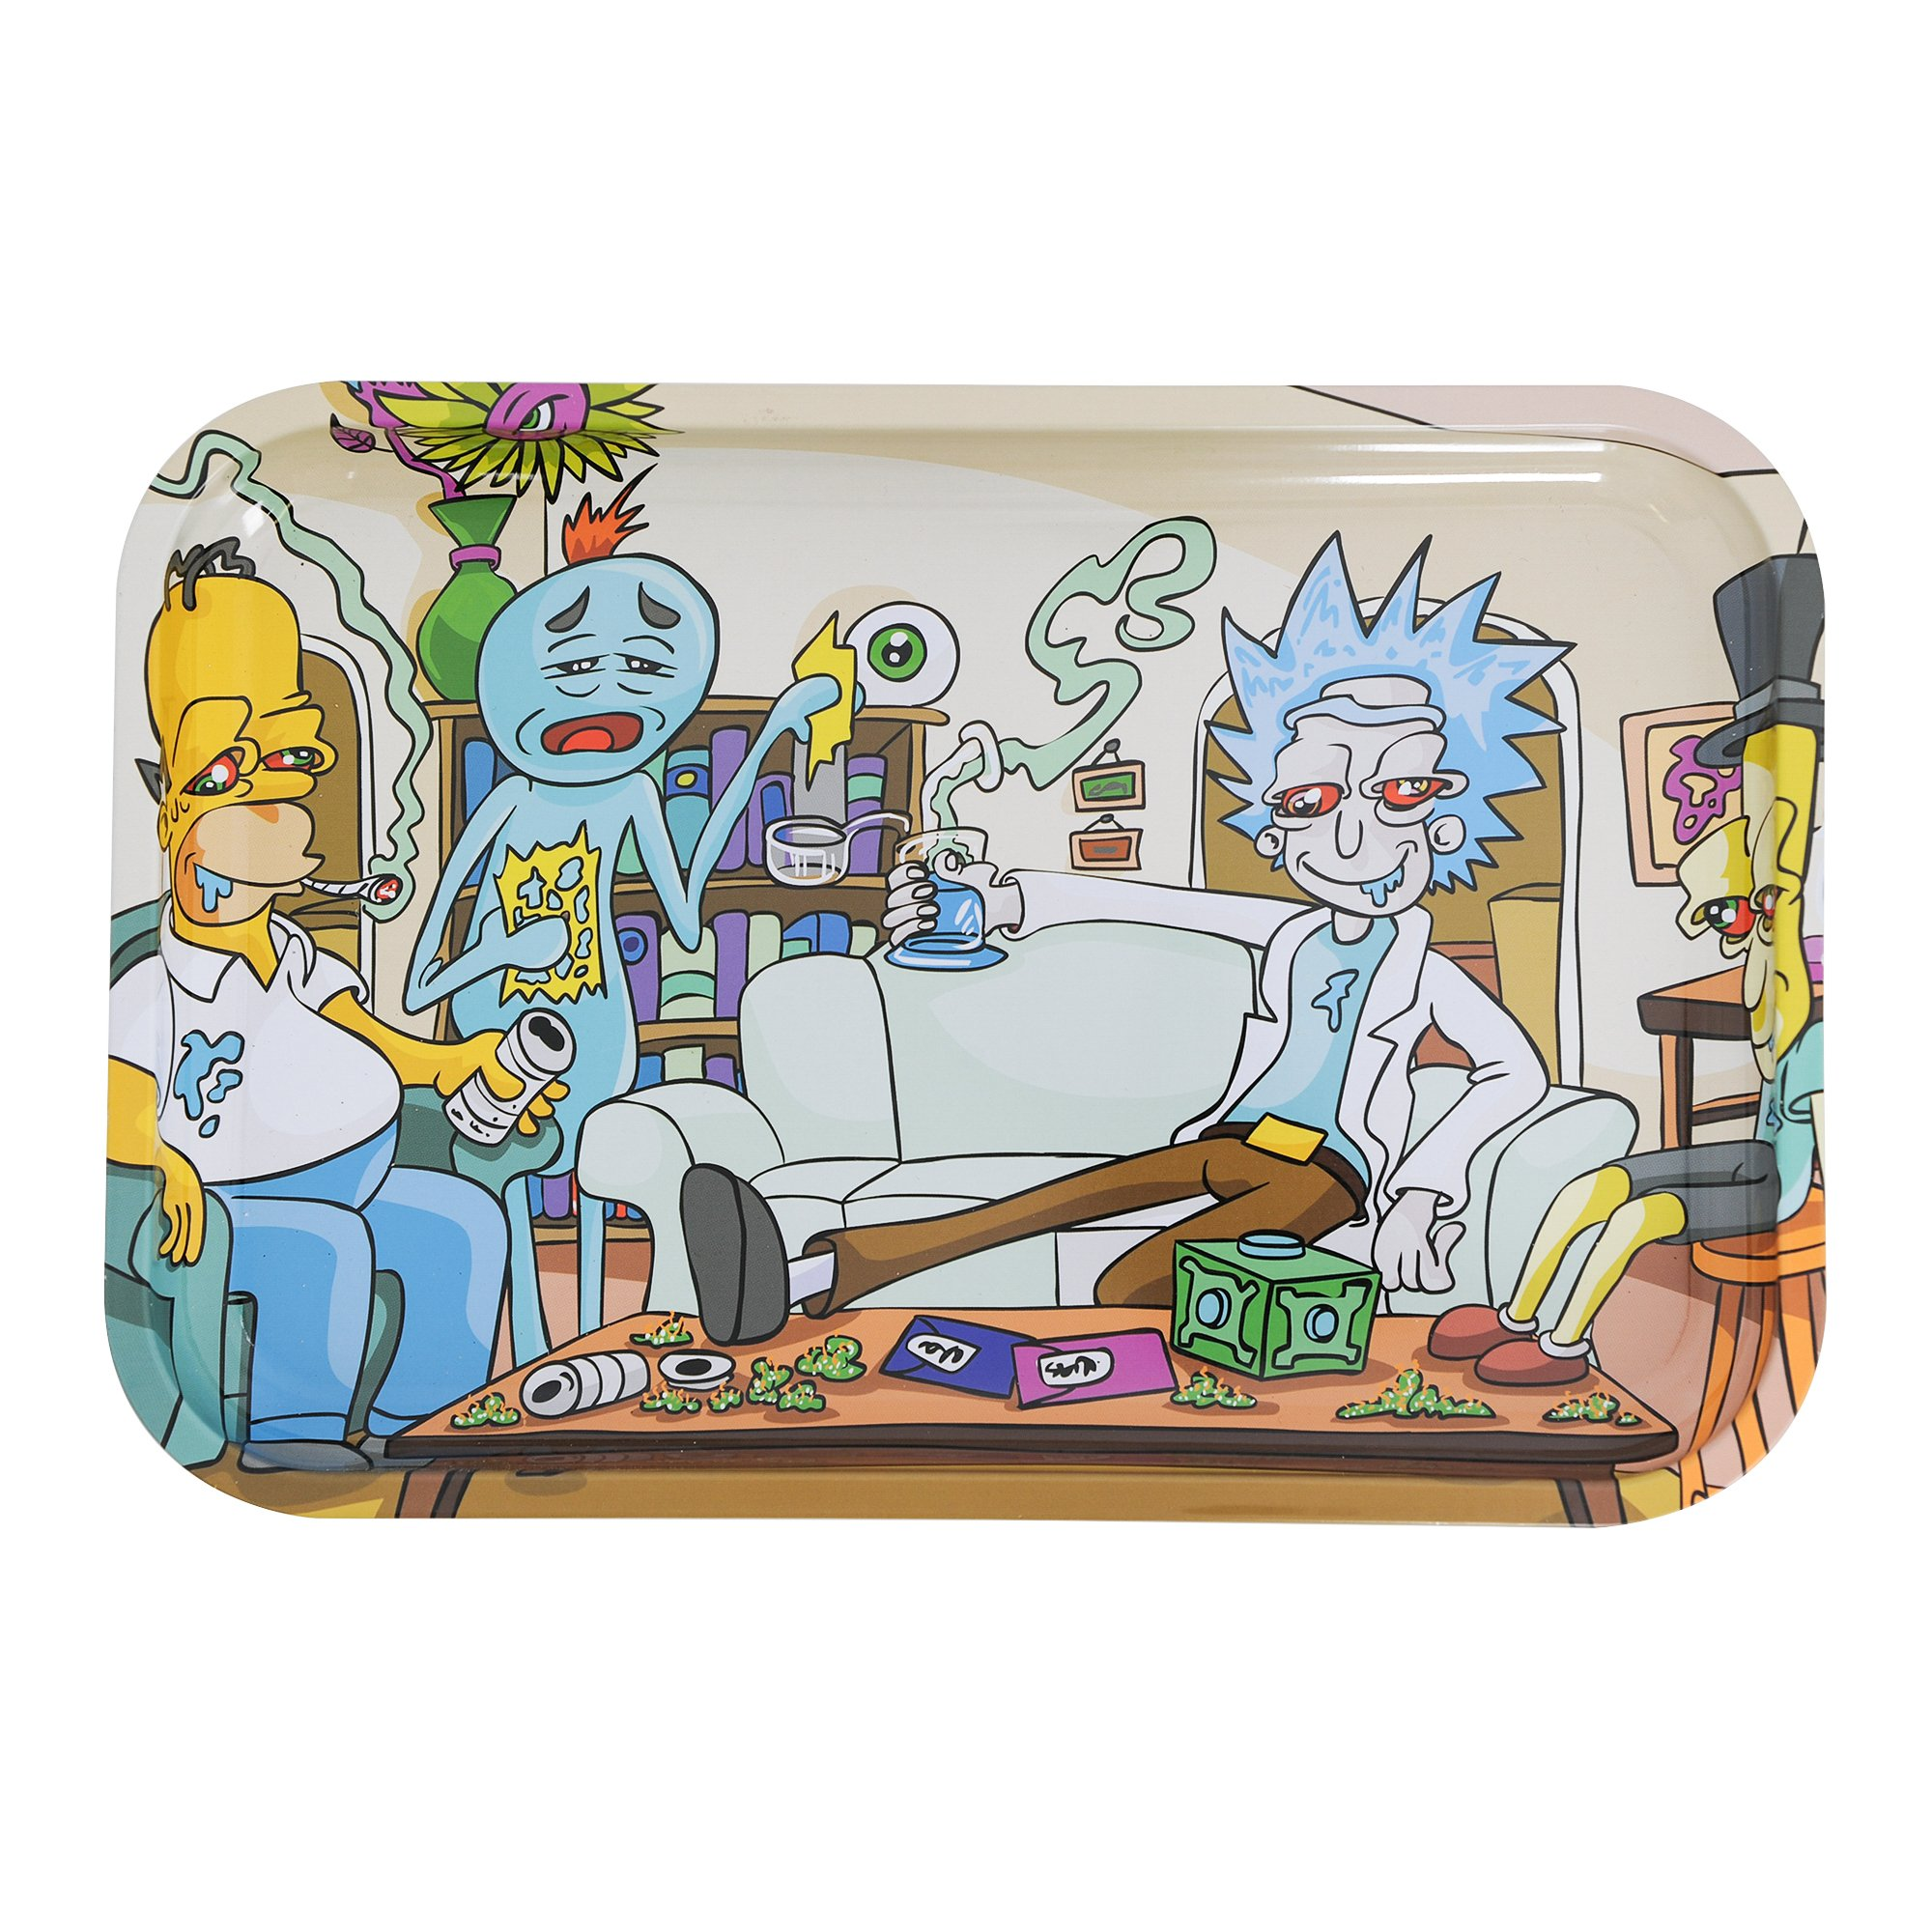 Impossible task rolling tray 13'' x 9'' Tin Rolling Trays (IMPOSSIBLE TASK)